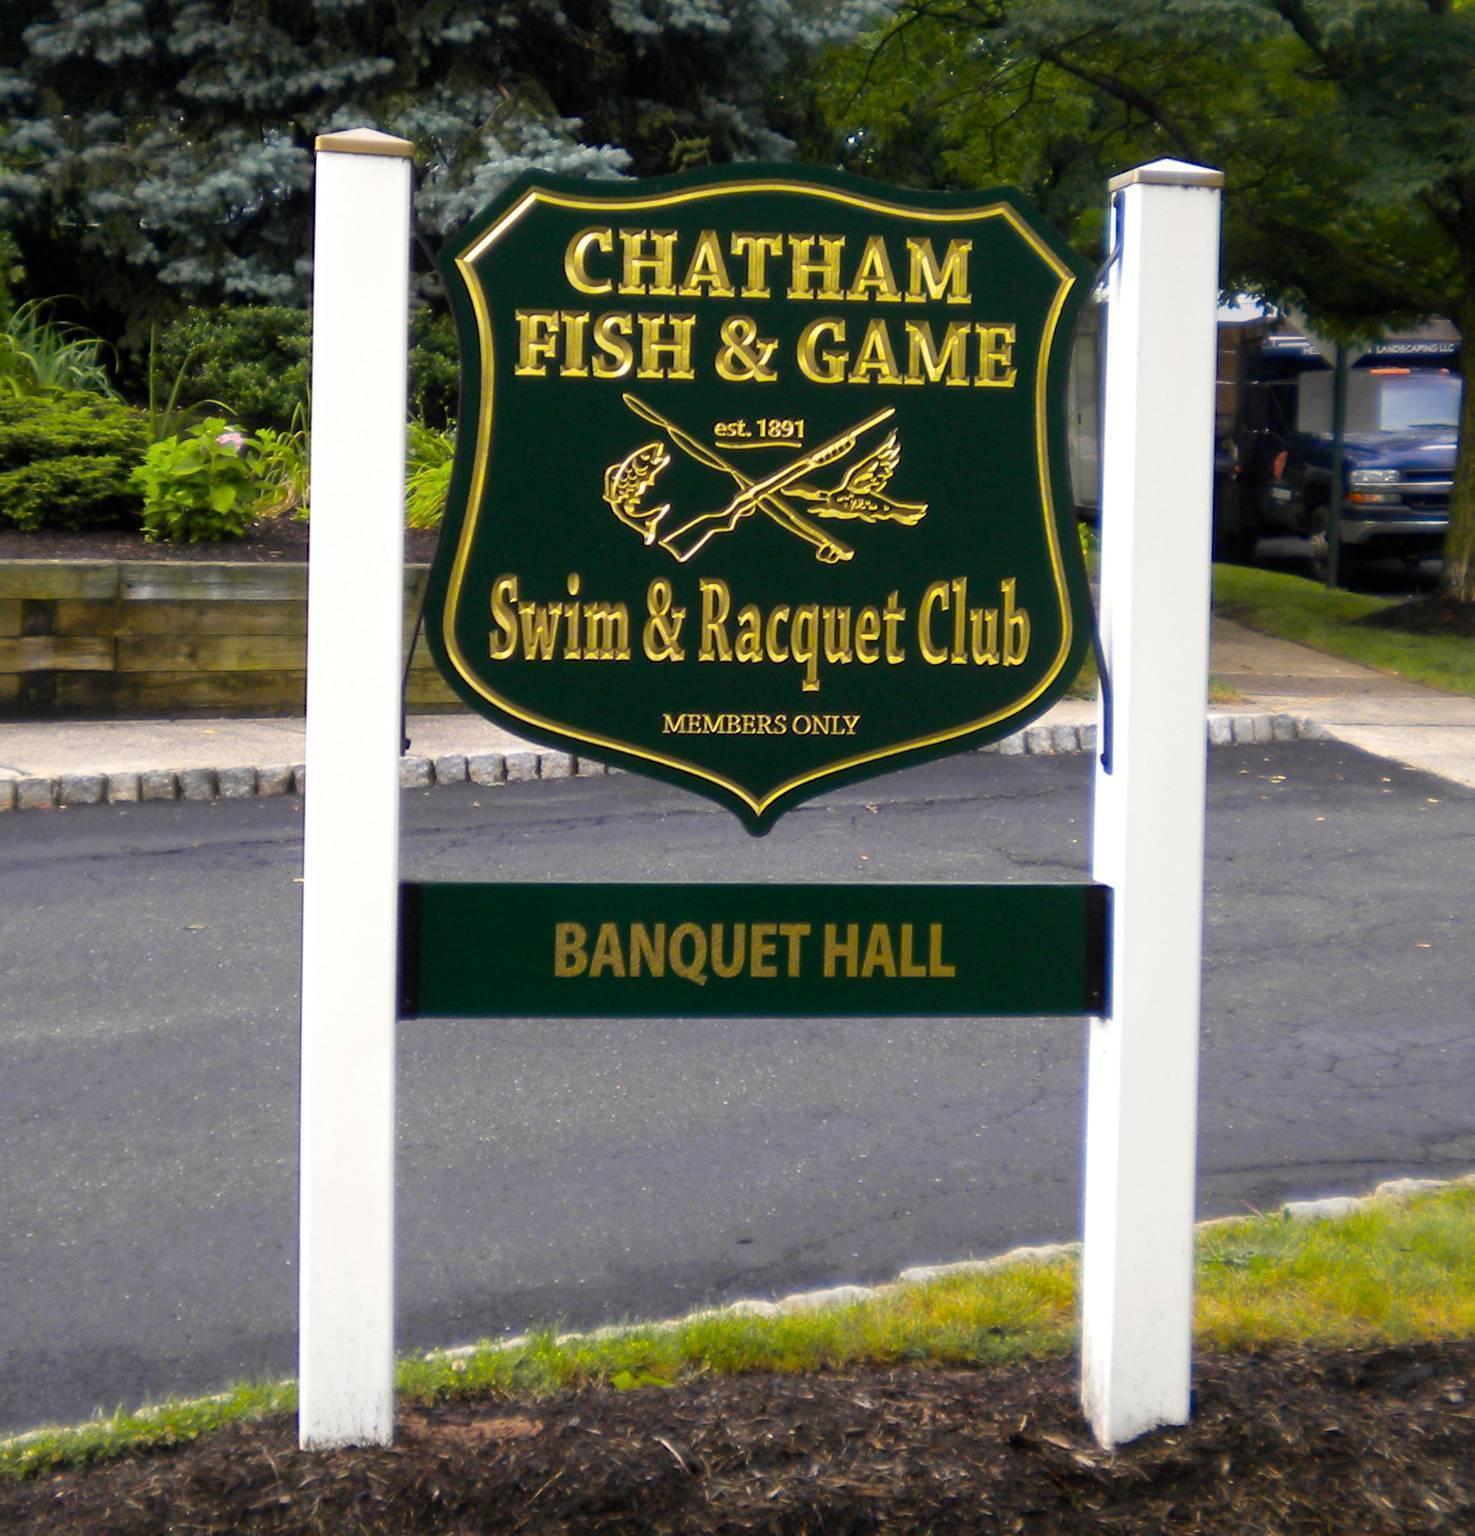 Chatham fish game club 125 years and counting news for Nj fish and game